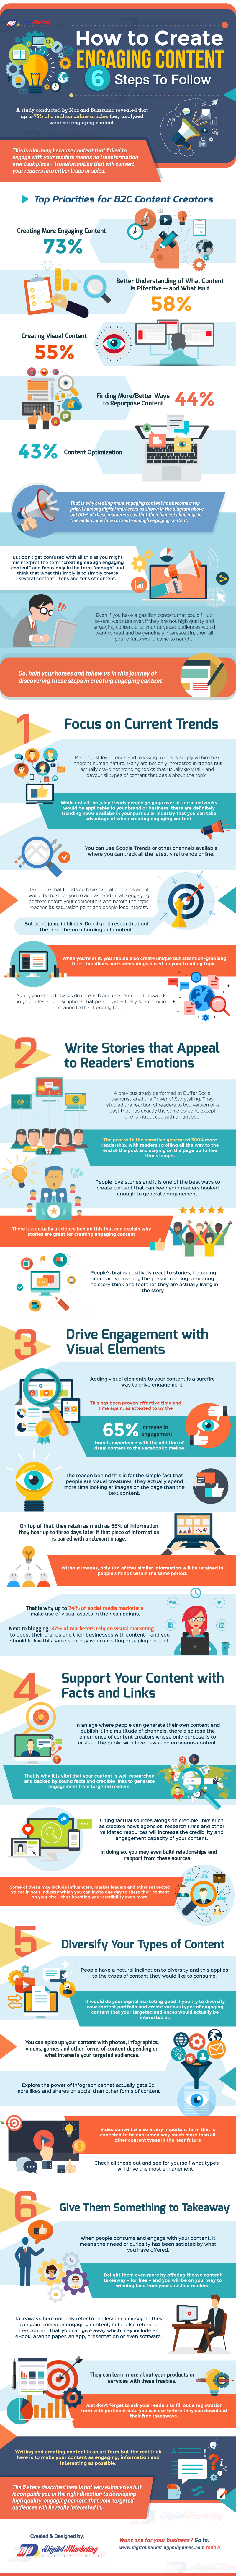 6_Steps_to_Follow_on_How_to_Create_Engaging_Content